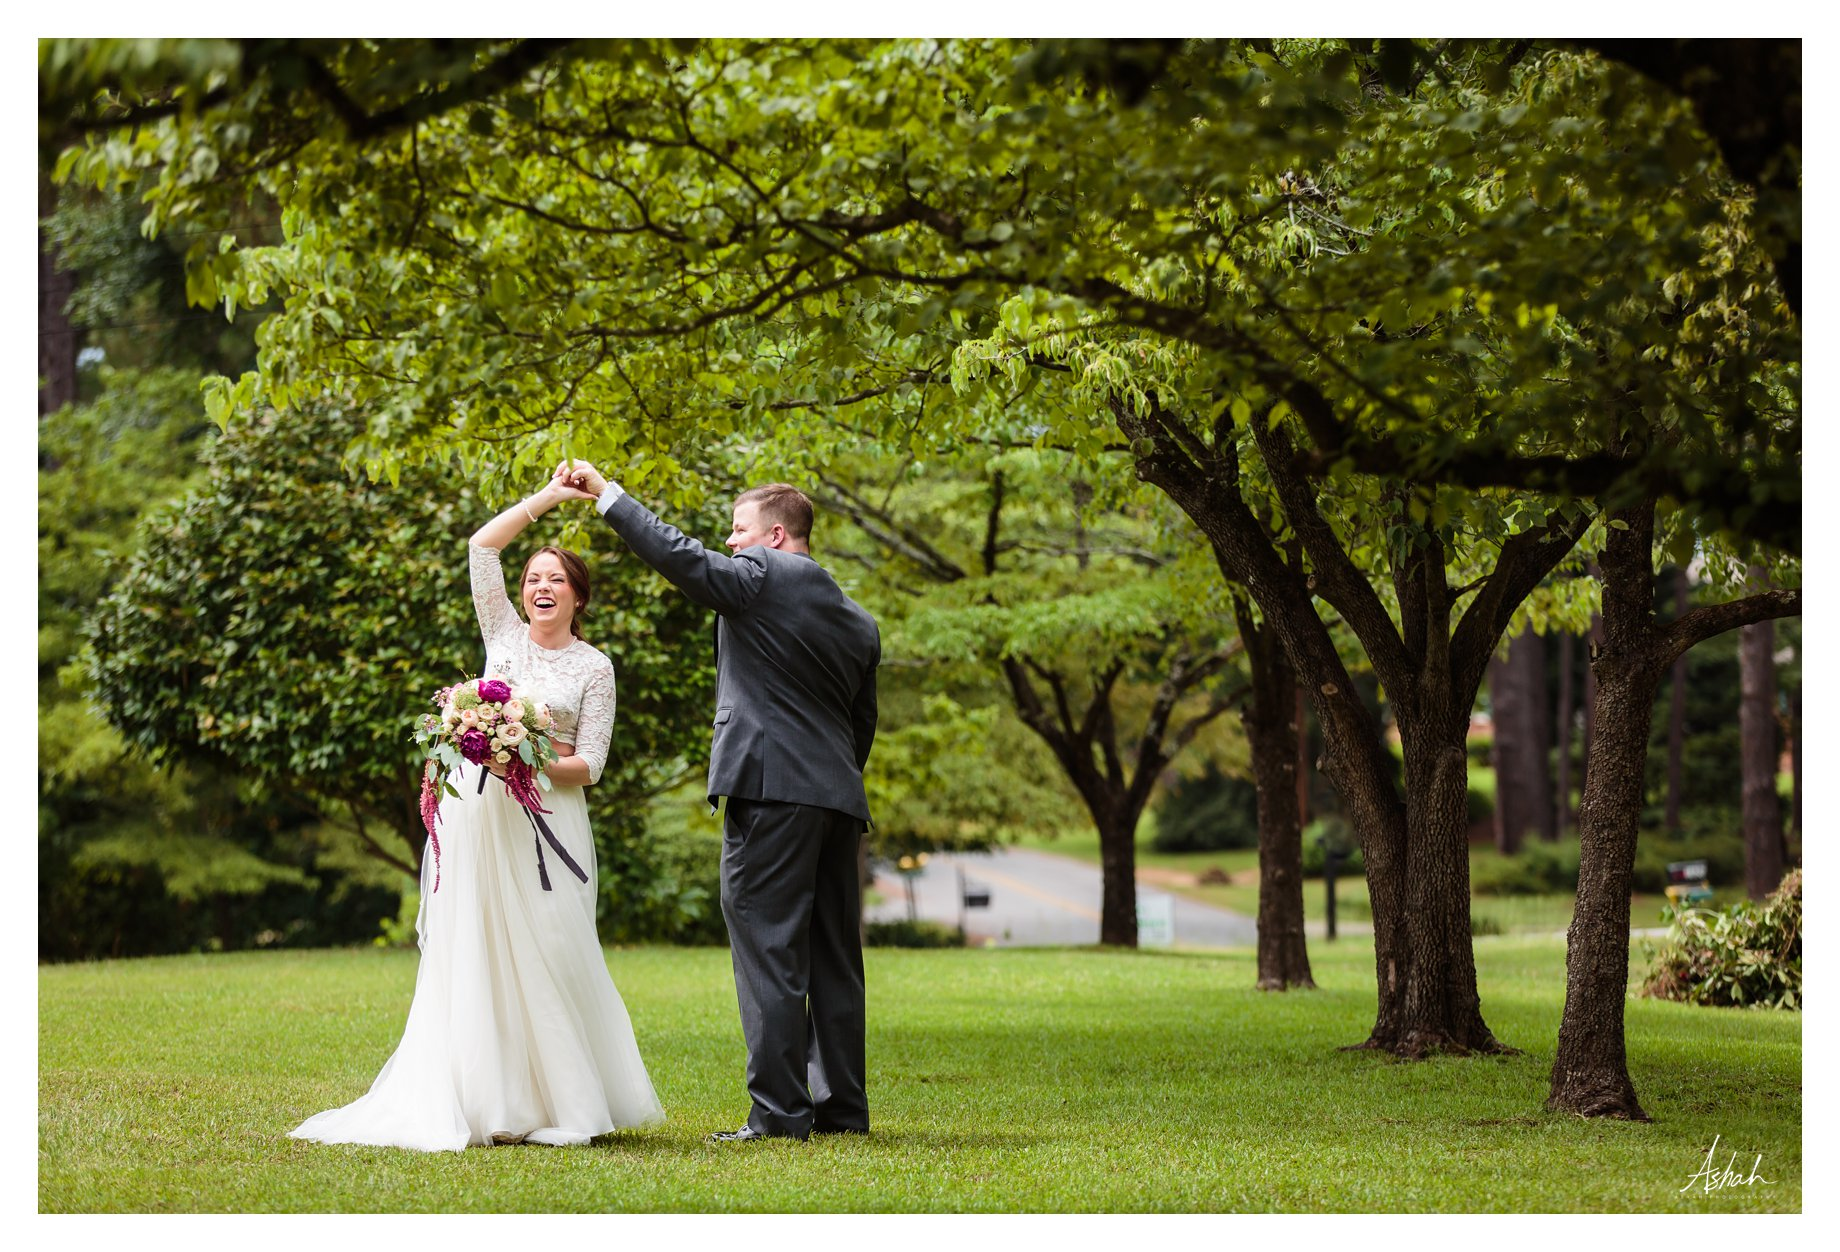 Ashah Photography - Dublin Wedding Photographer